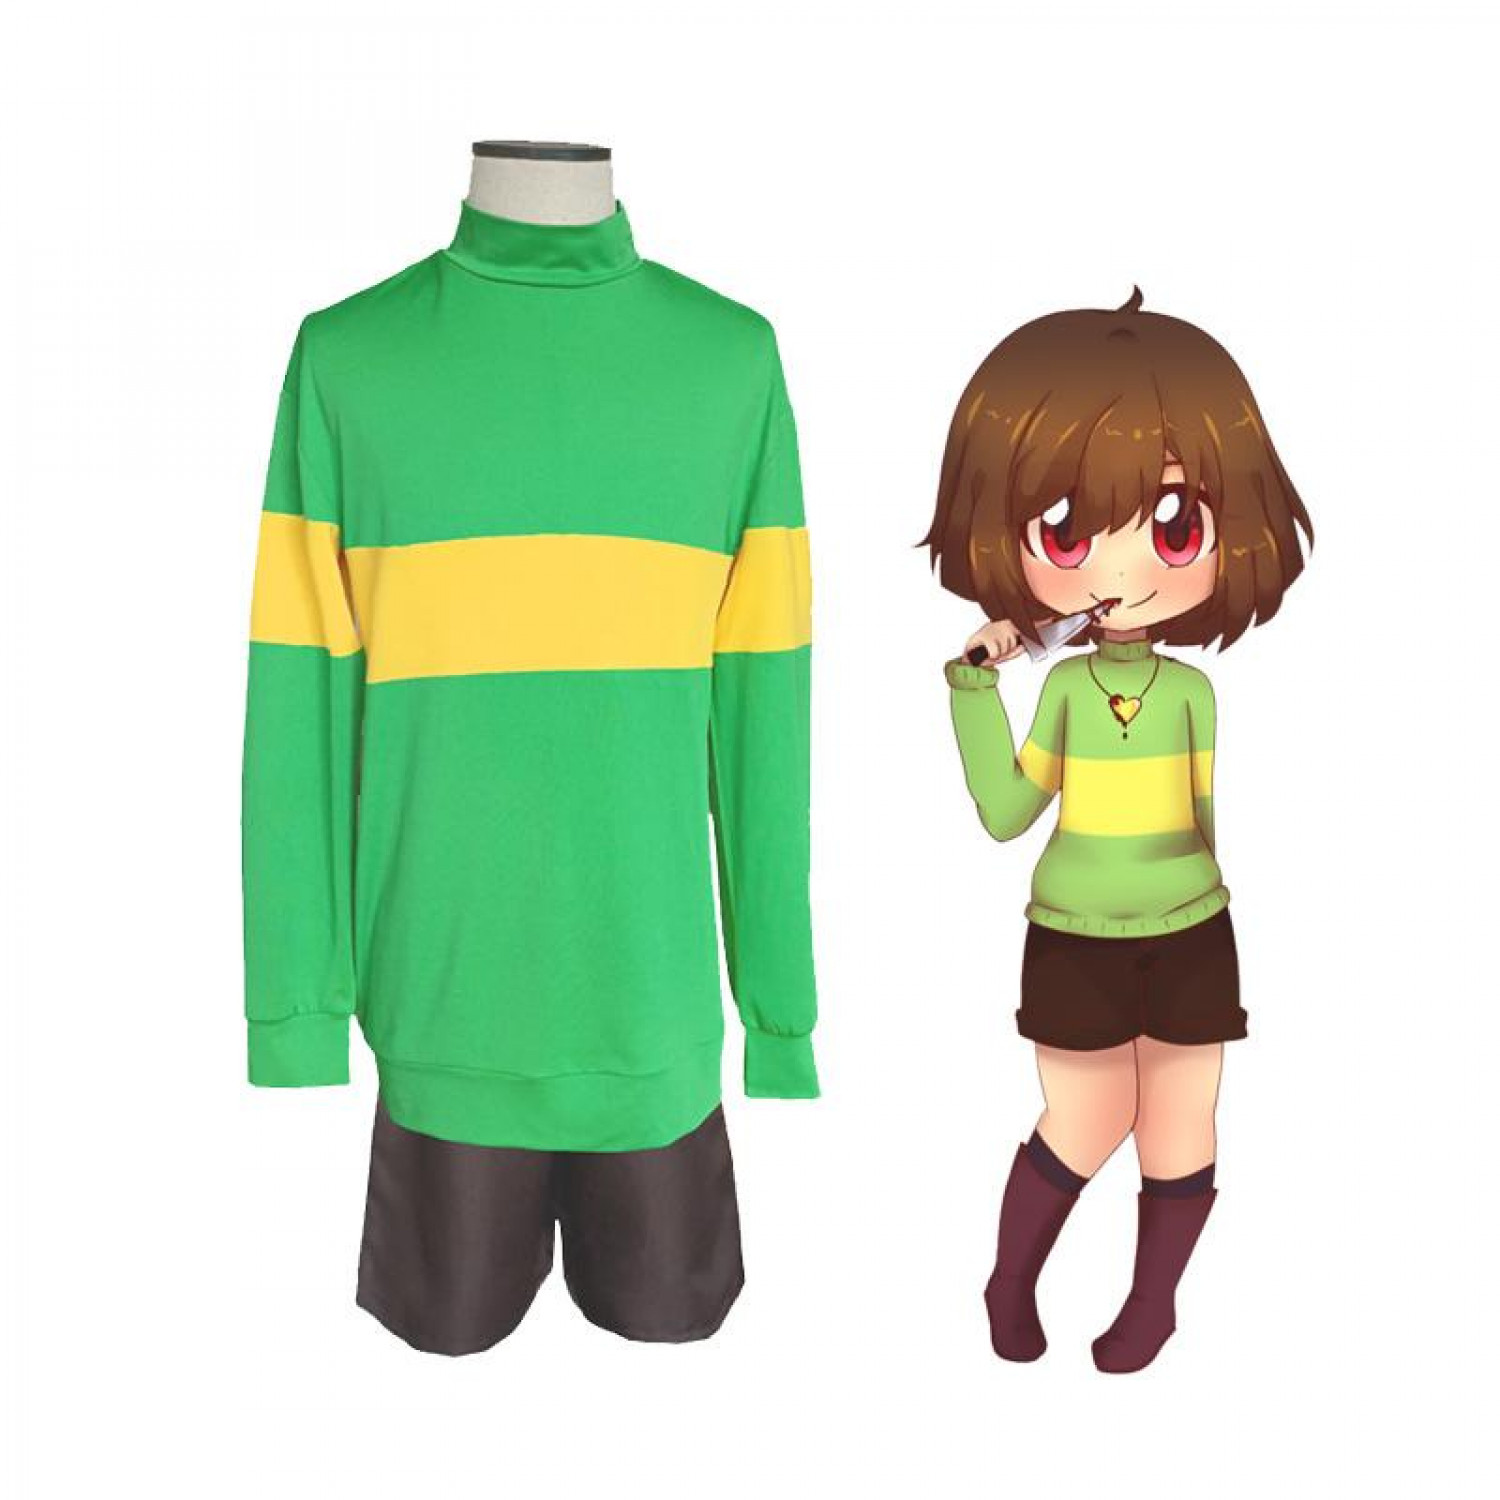 Undertale Chara Anime Cosplay Costume